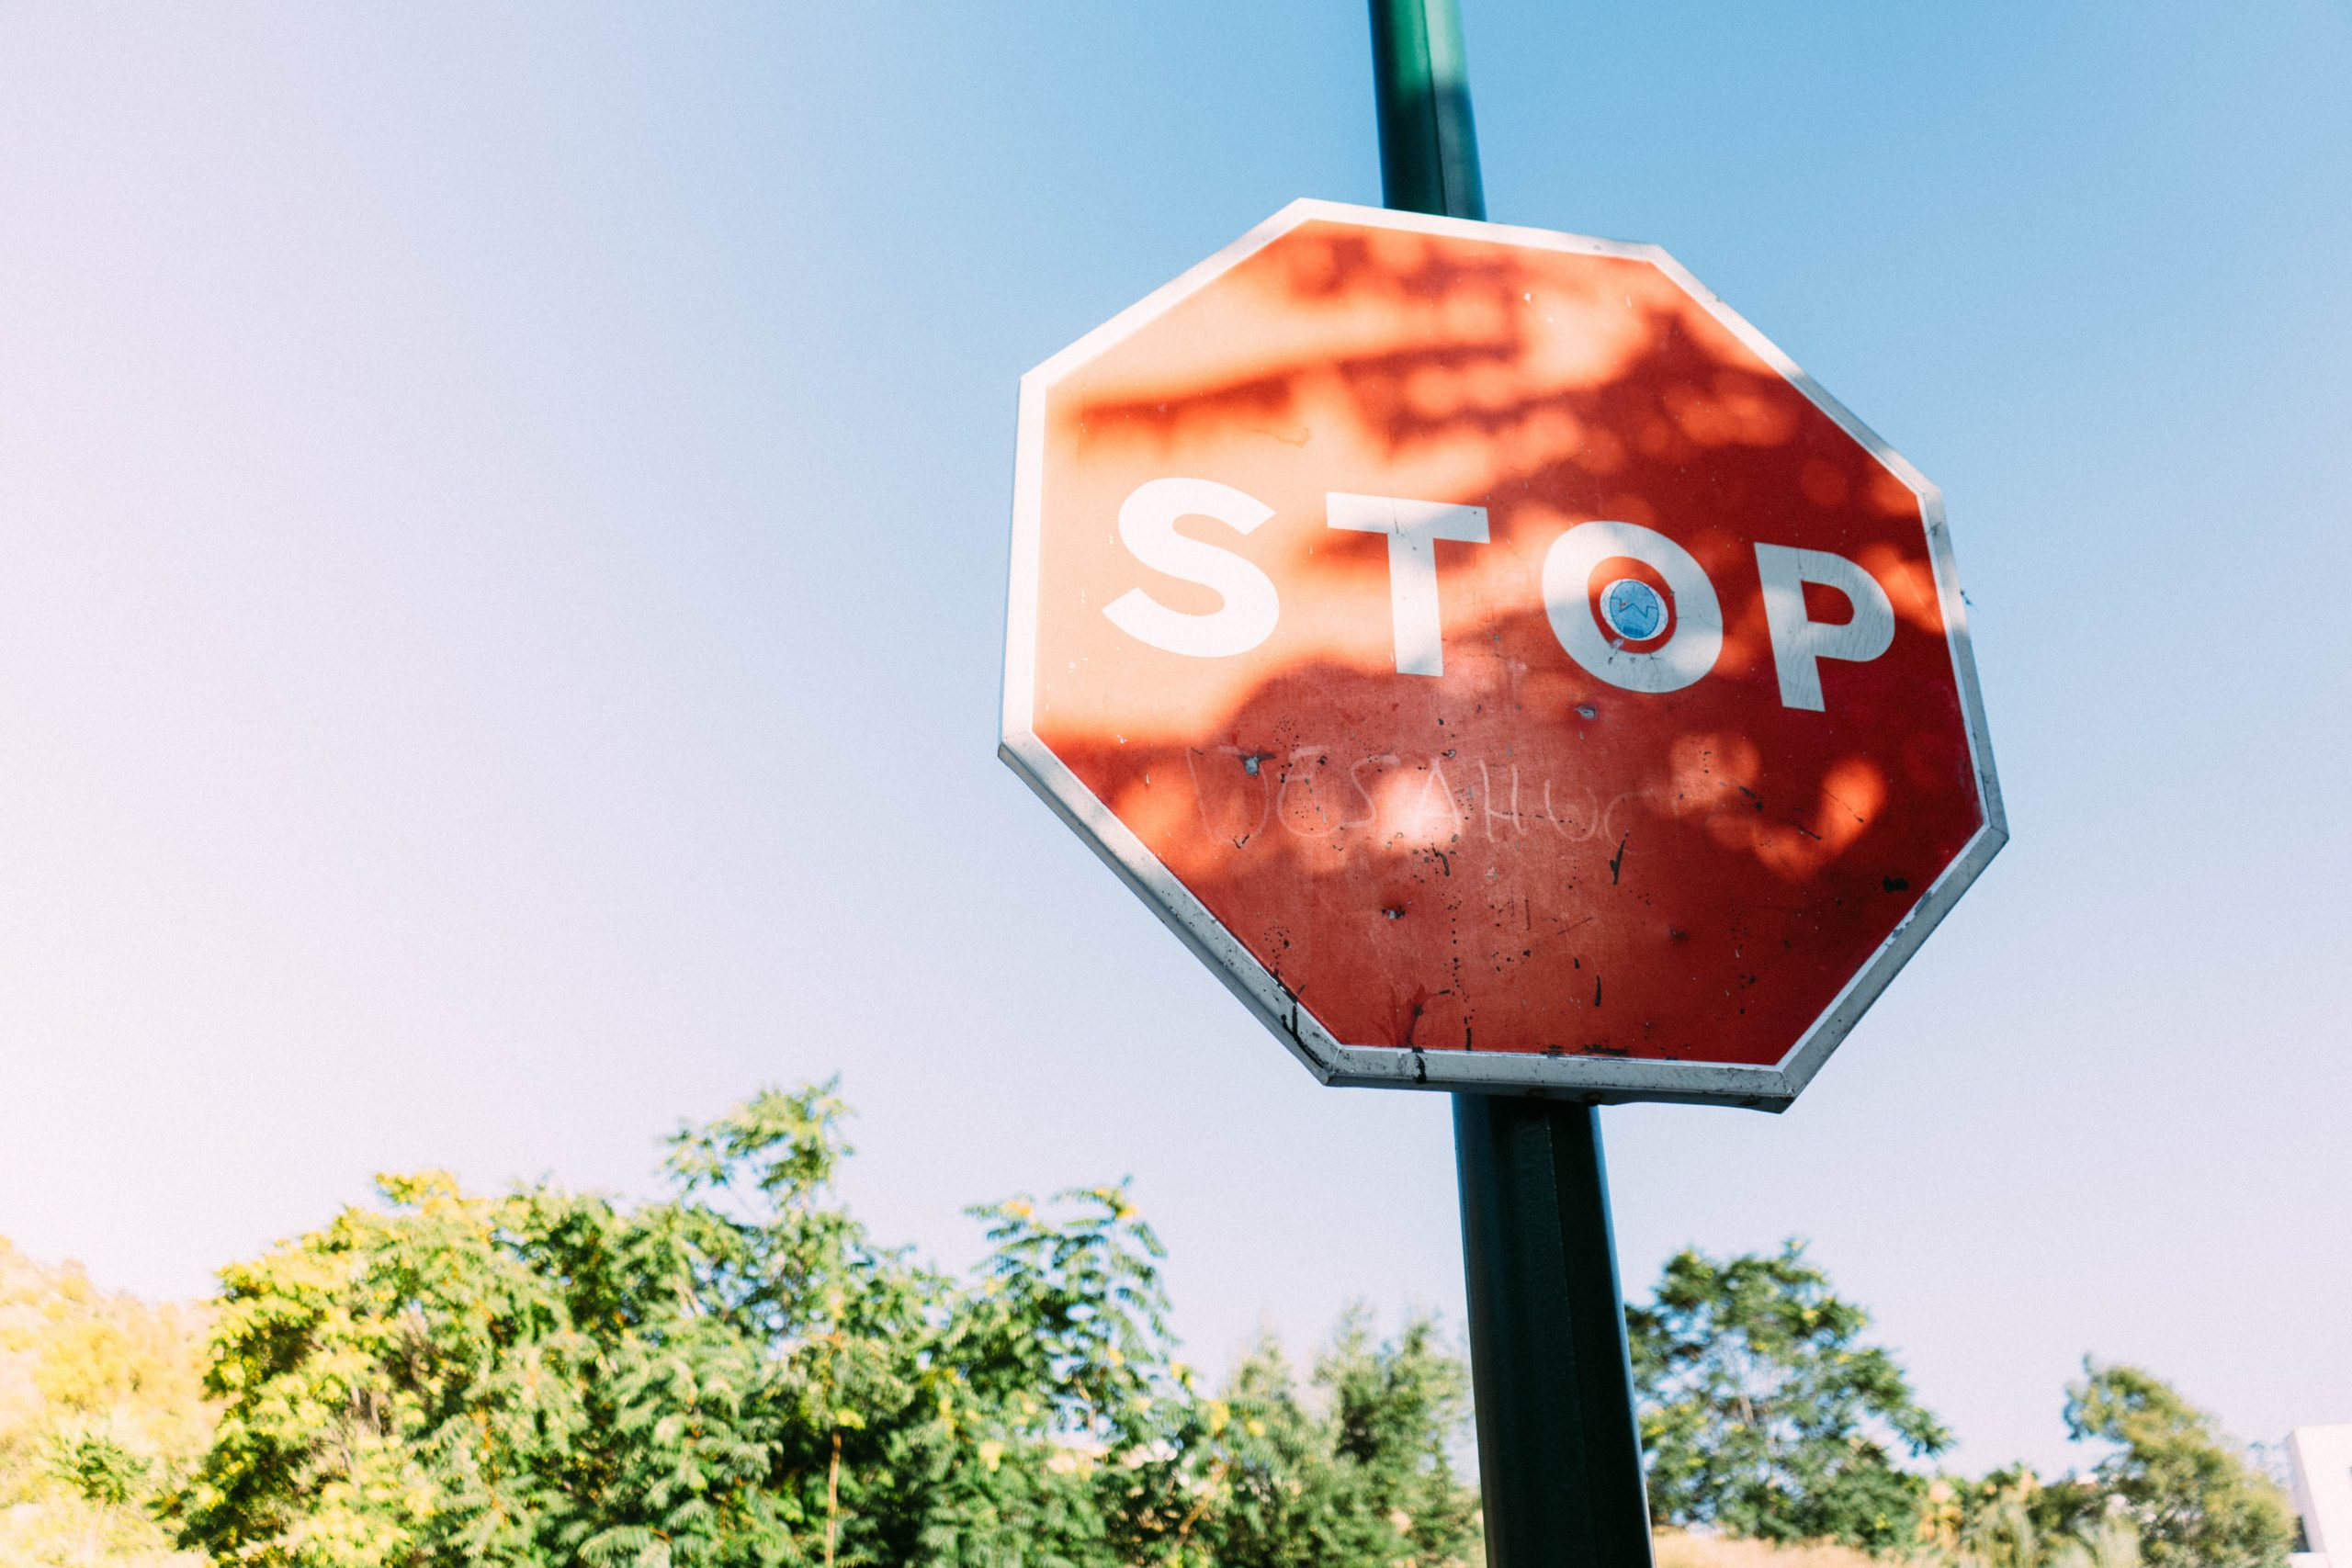 red-stop-signage-under-clear-blue-sky-1292296